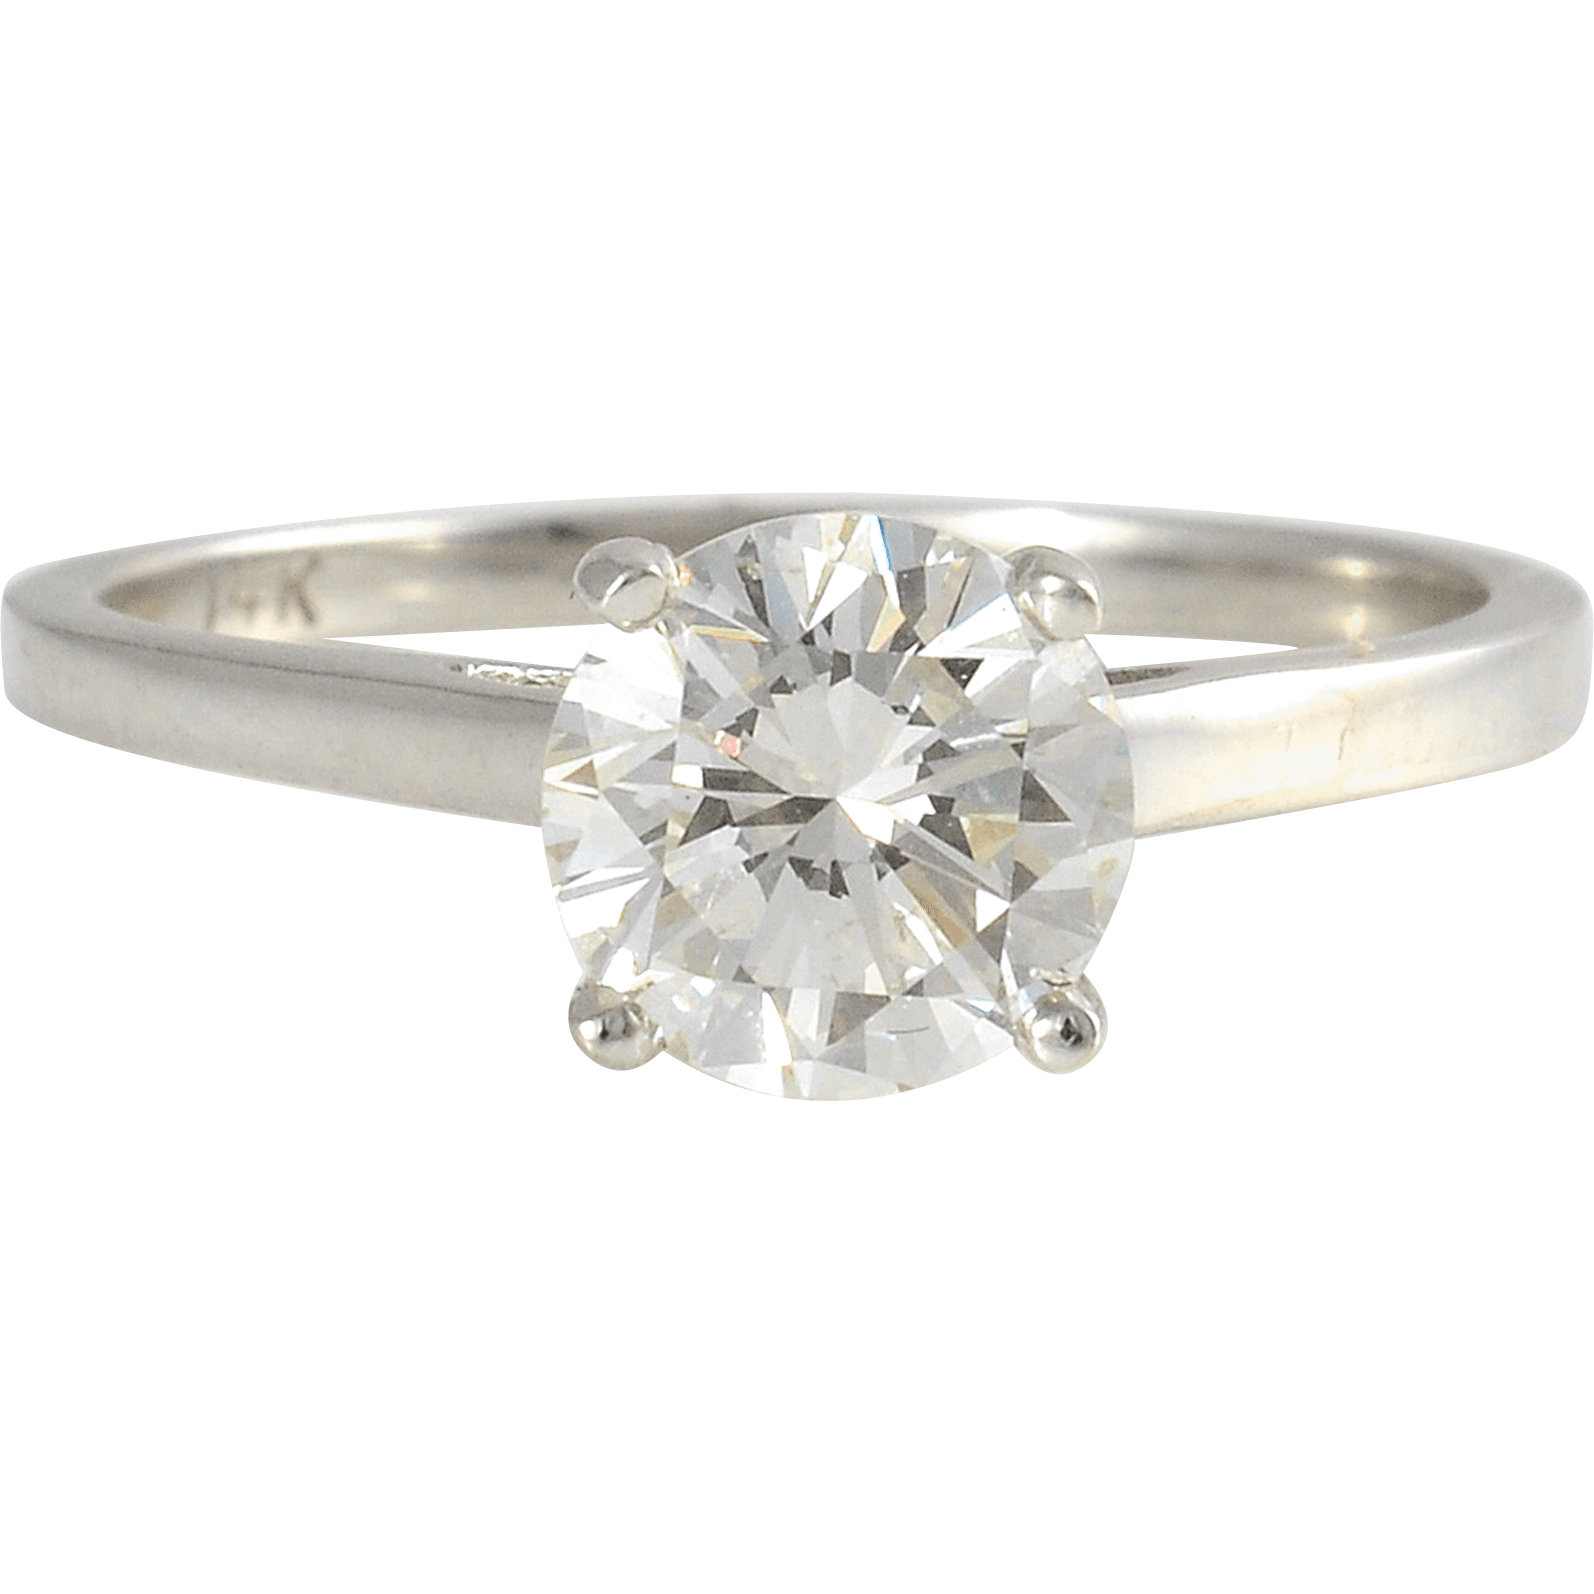 1.19 Carat Diamond Solitaire Engagement Ring